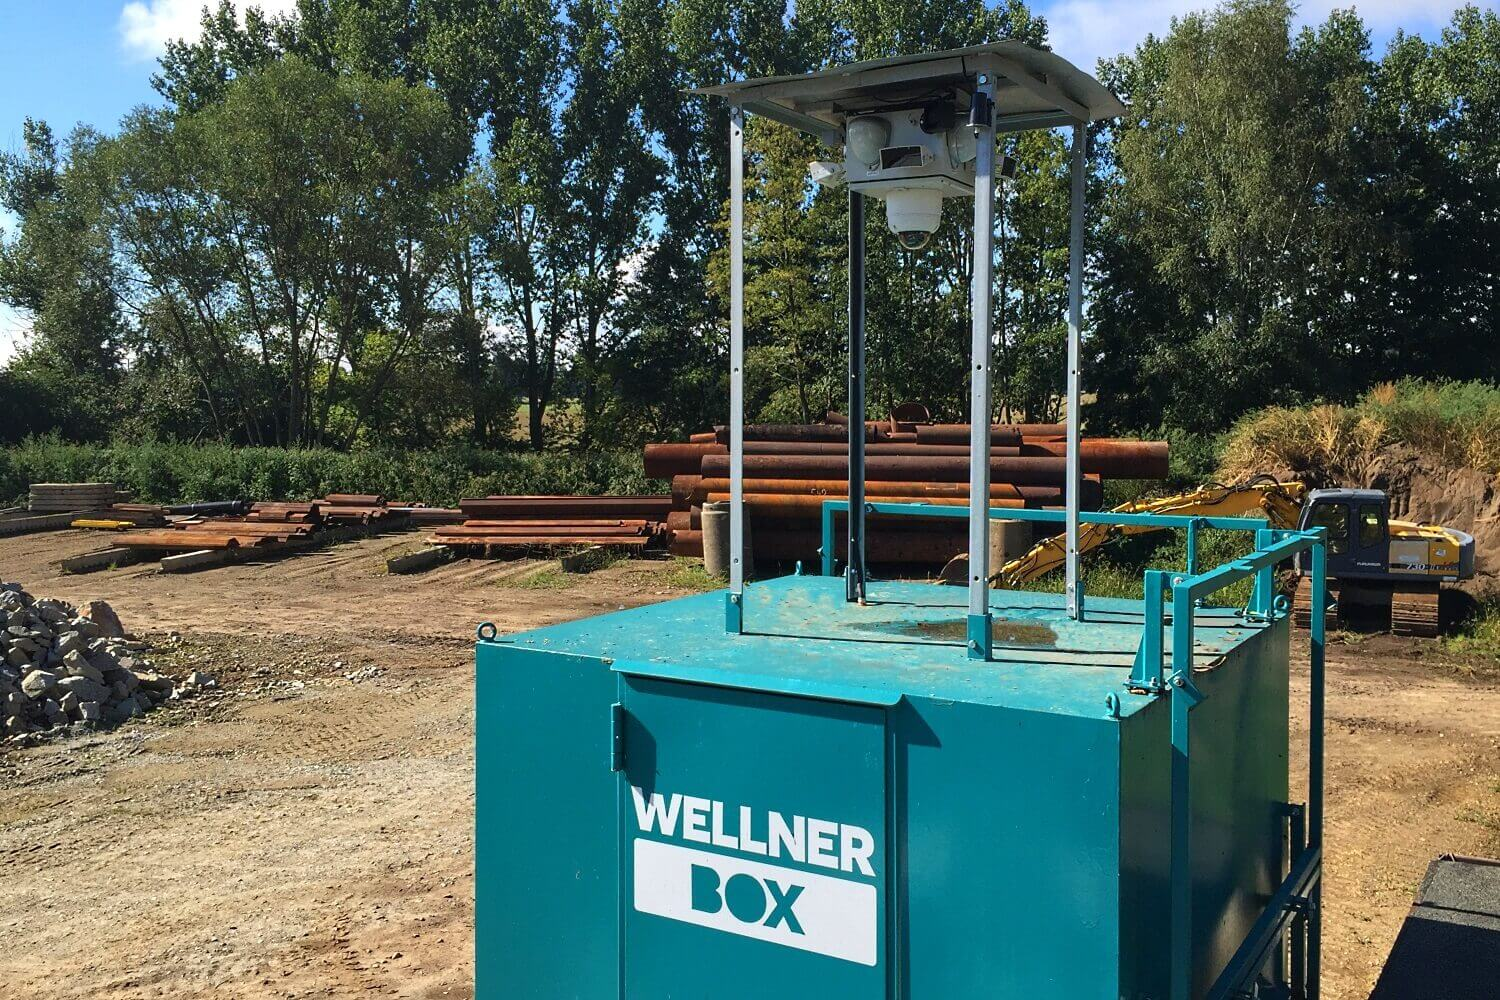 Safety was considered early on - the WellnerBOX at Burg (Spreewald)